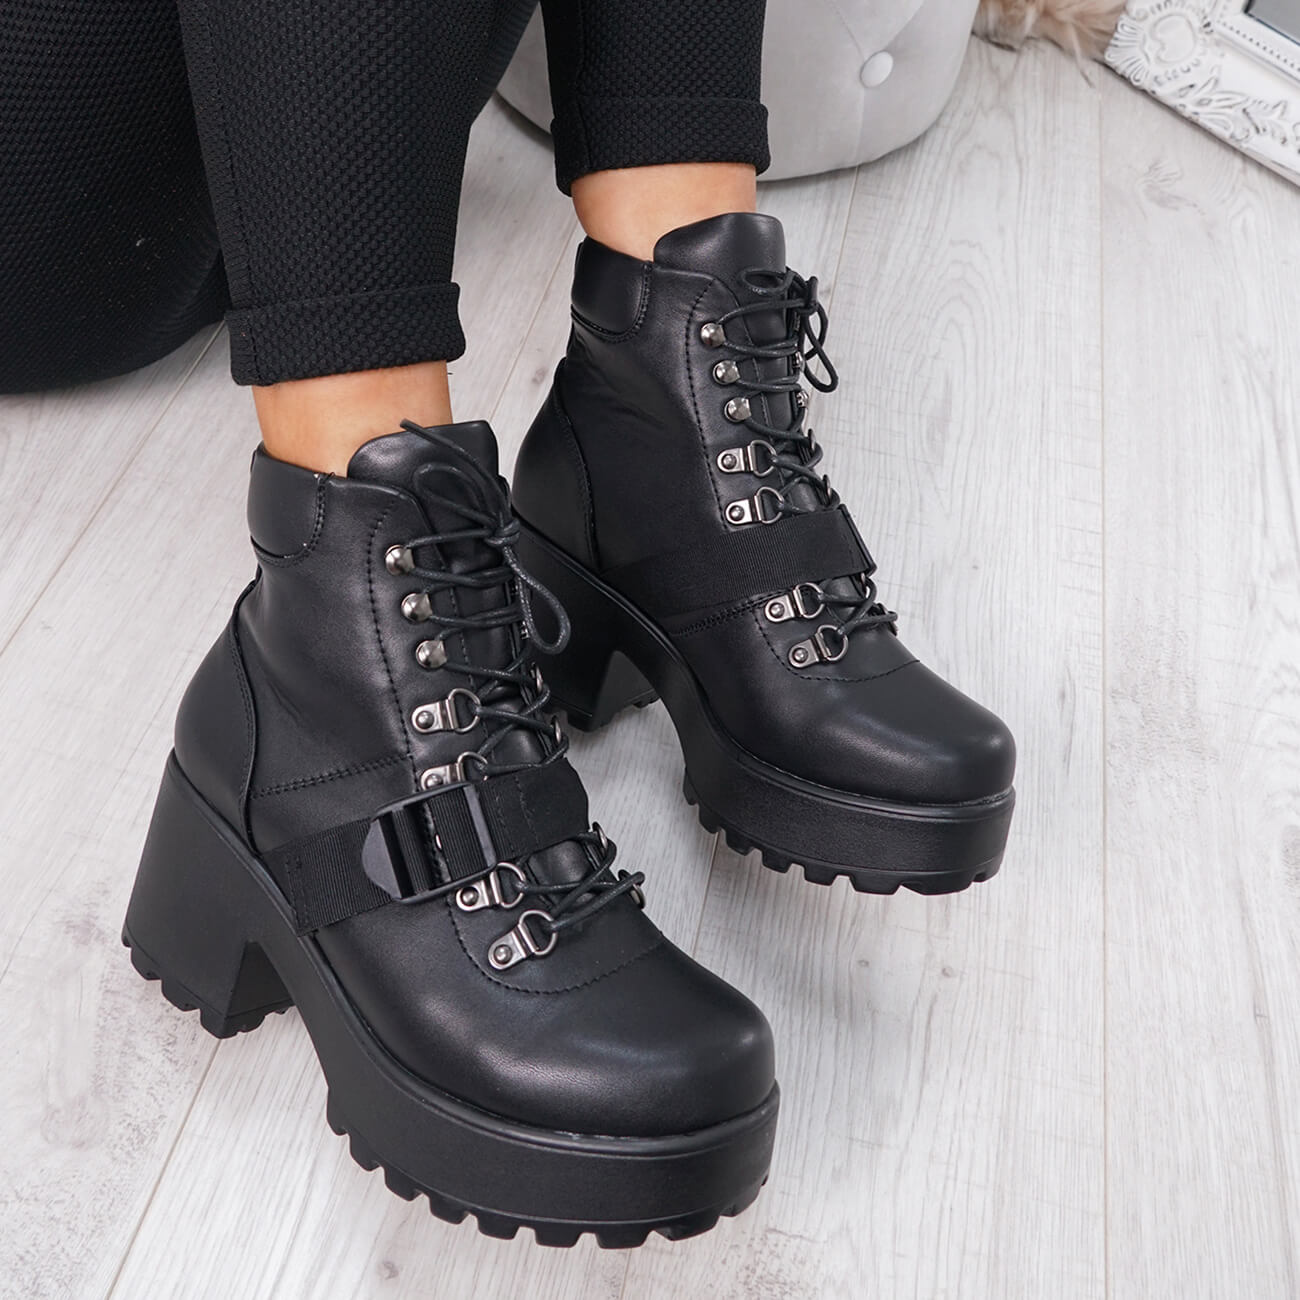 reputable site where to buy reliable quality Details about WOMENS LADIES CHUNKY ANKLE BOOTS BIKER BOOT LACE UP BUCKLE  SHOES